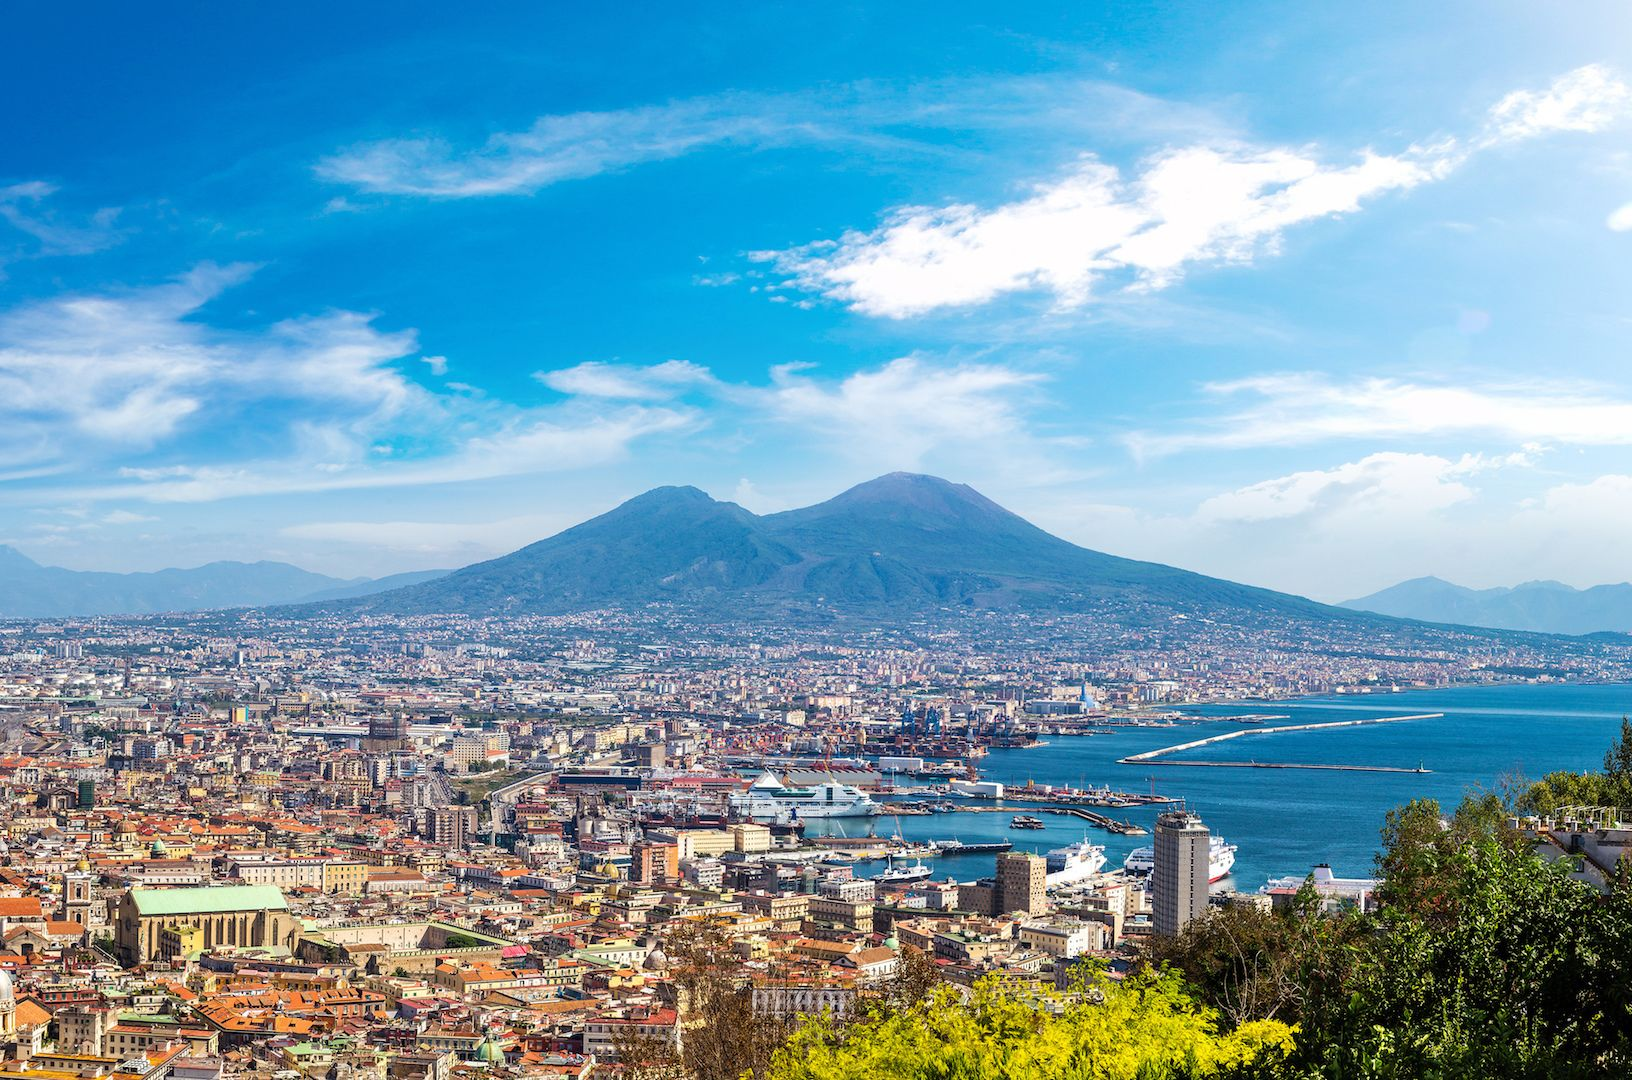 Naples Experience: Small Group Tour from Sorrento with Lunch